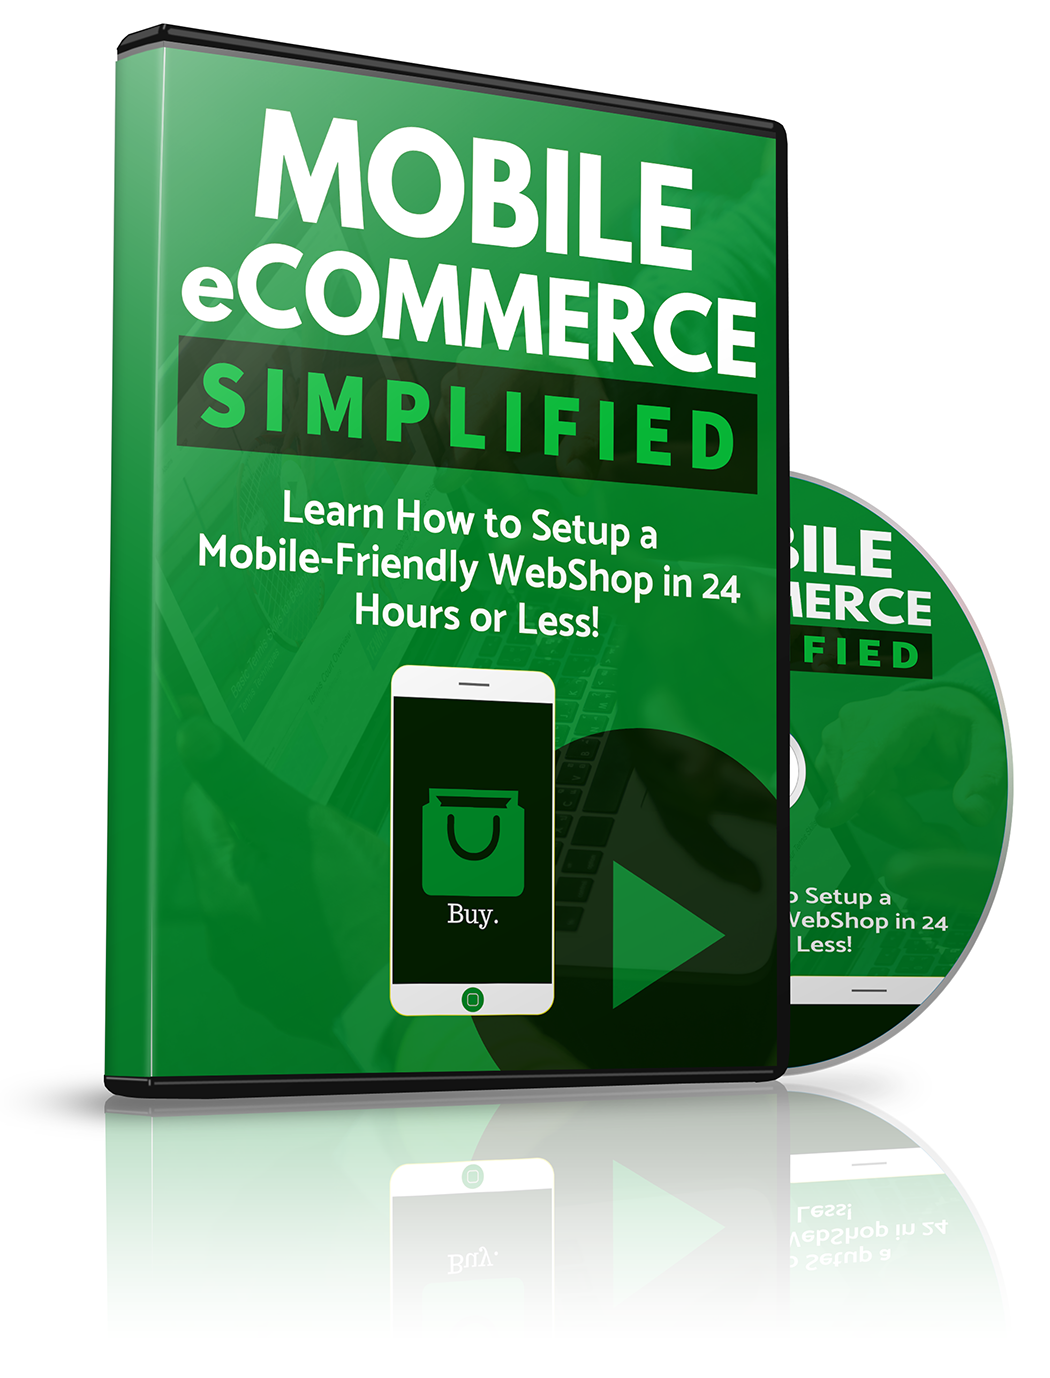 mobile-ecommerce-video